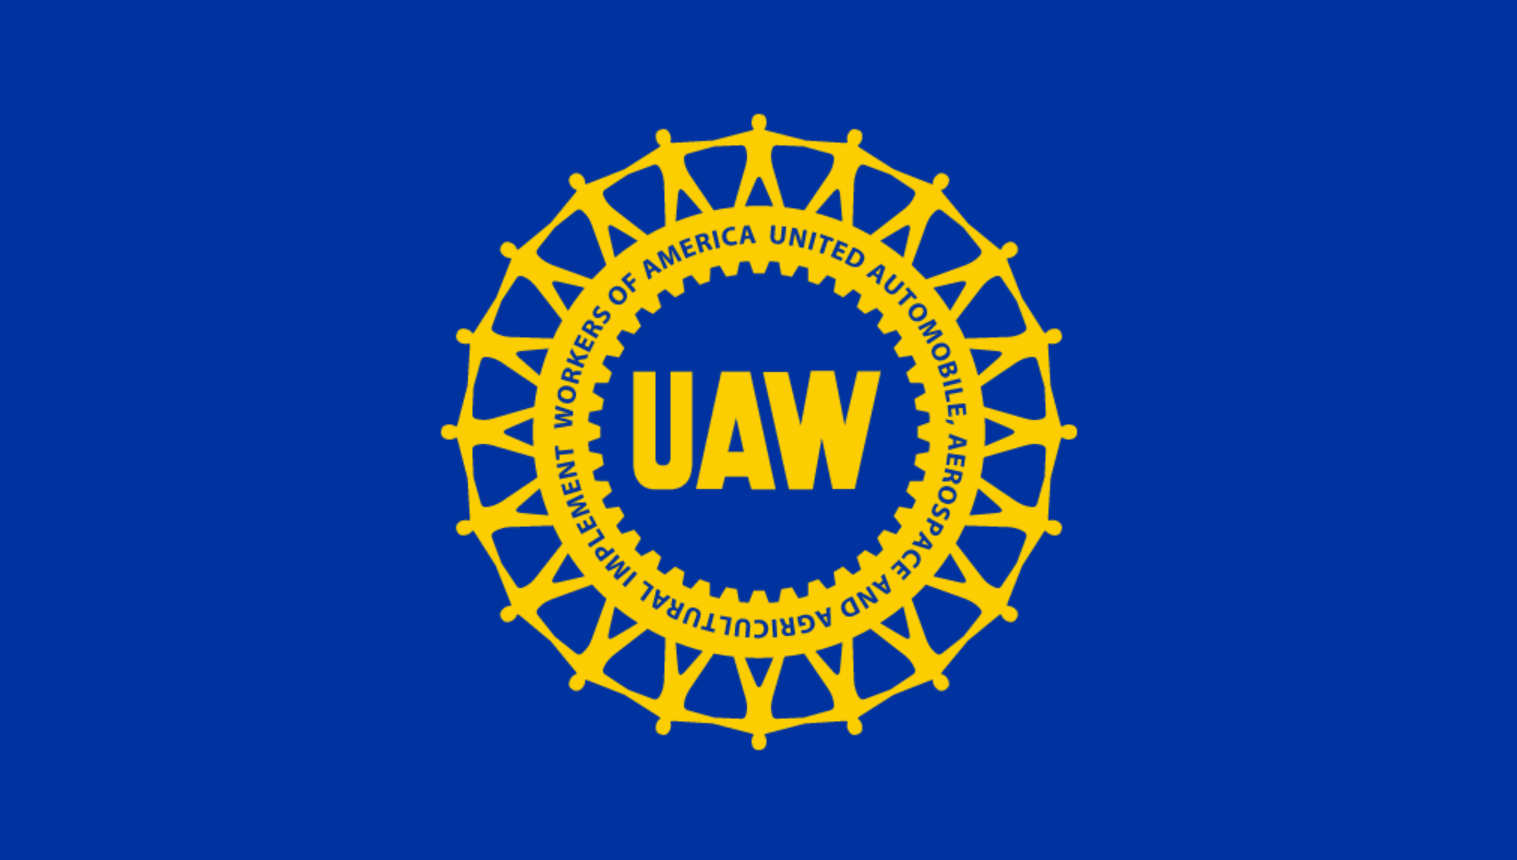 Former UAW president pleads guilty to embezzling $1 million in union funds